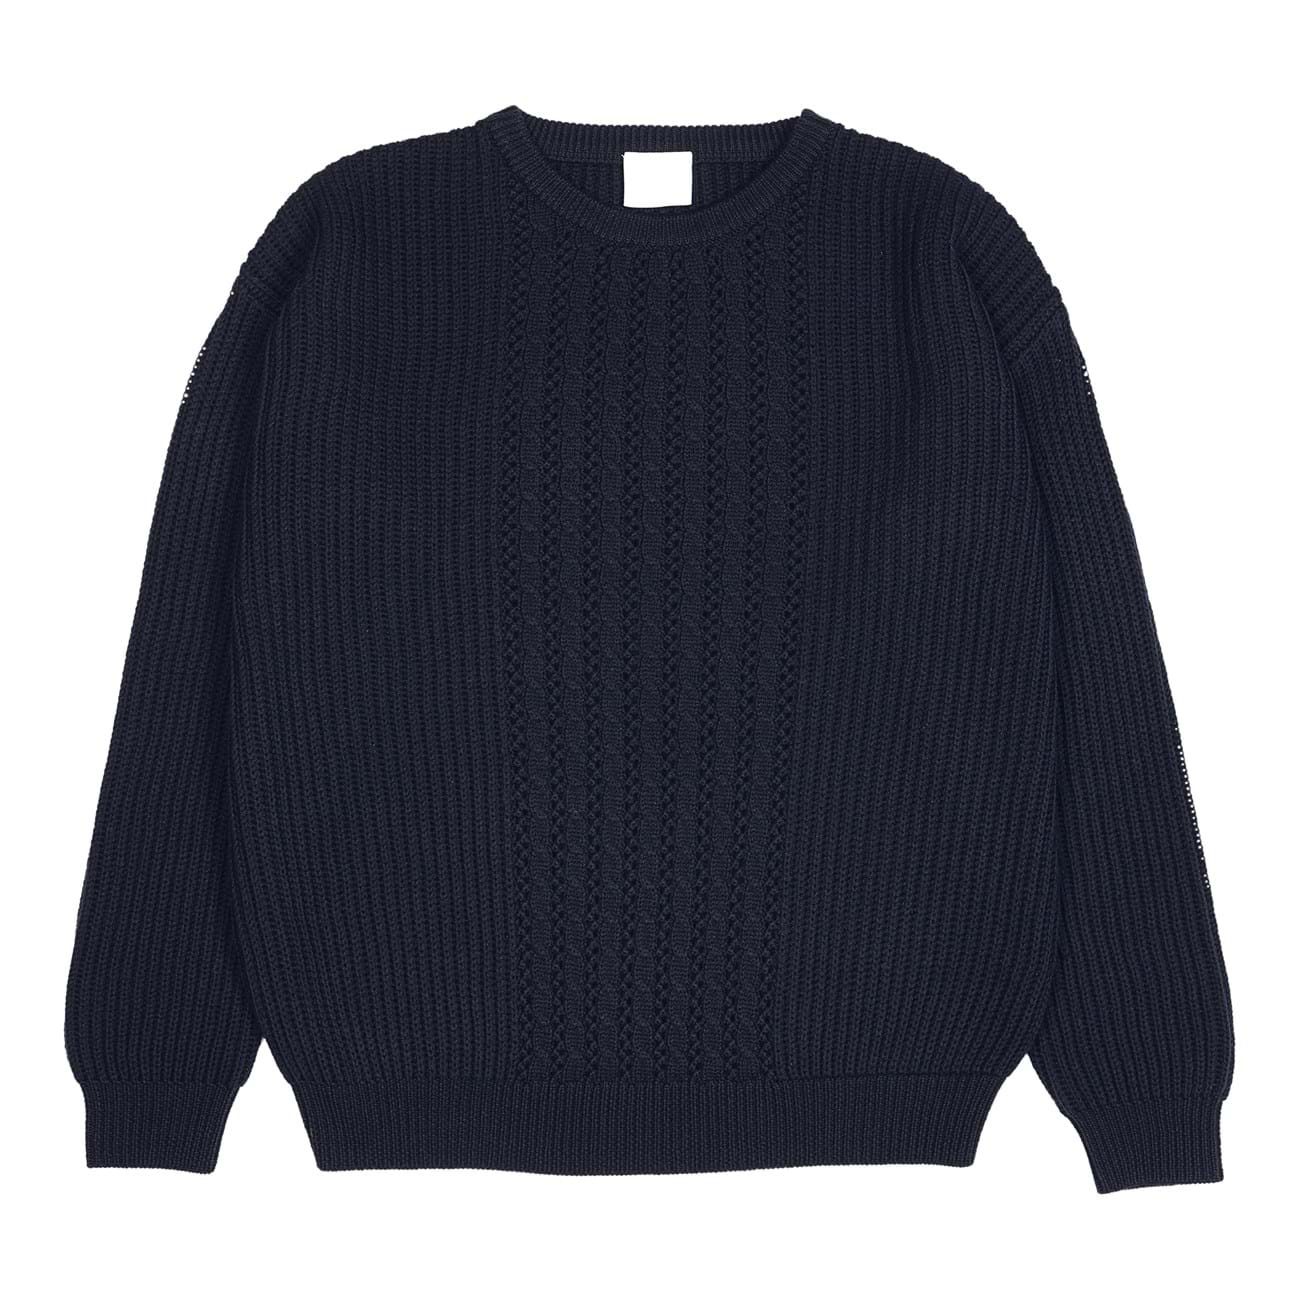 FUB WOMEN Combi Sweater, navy